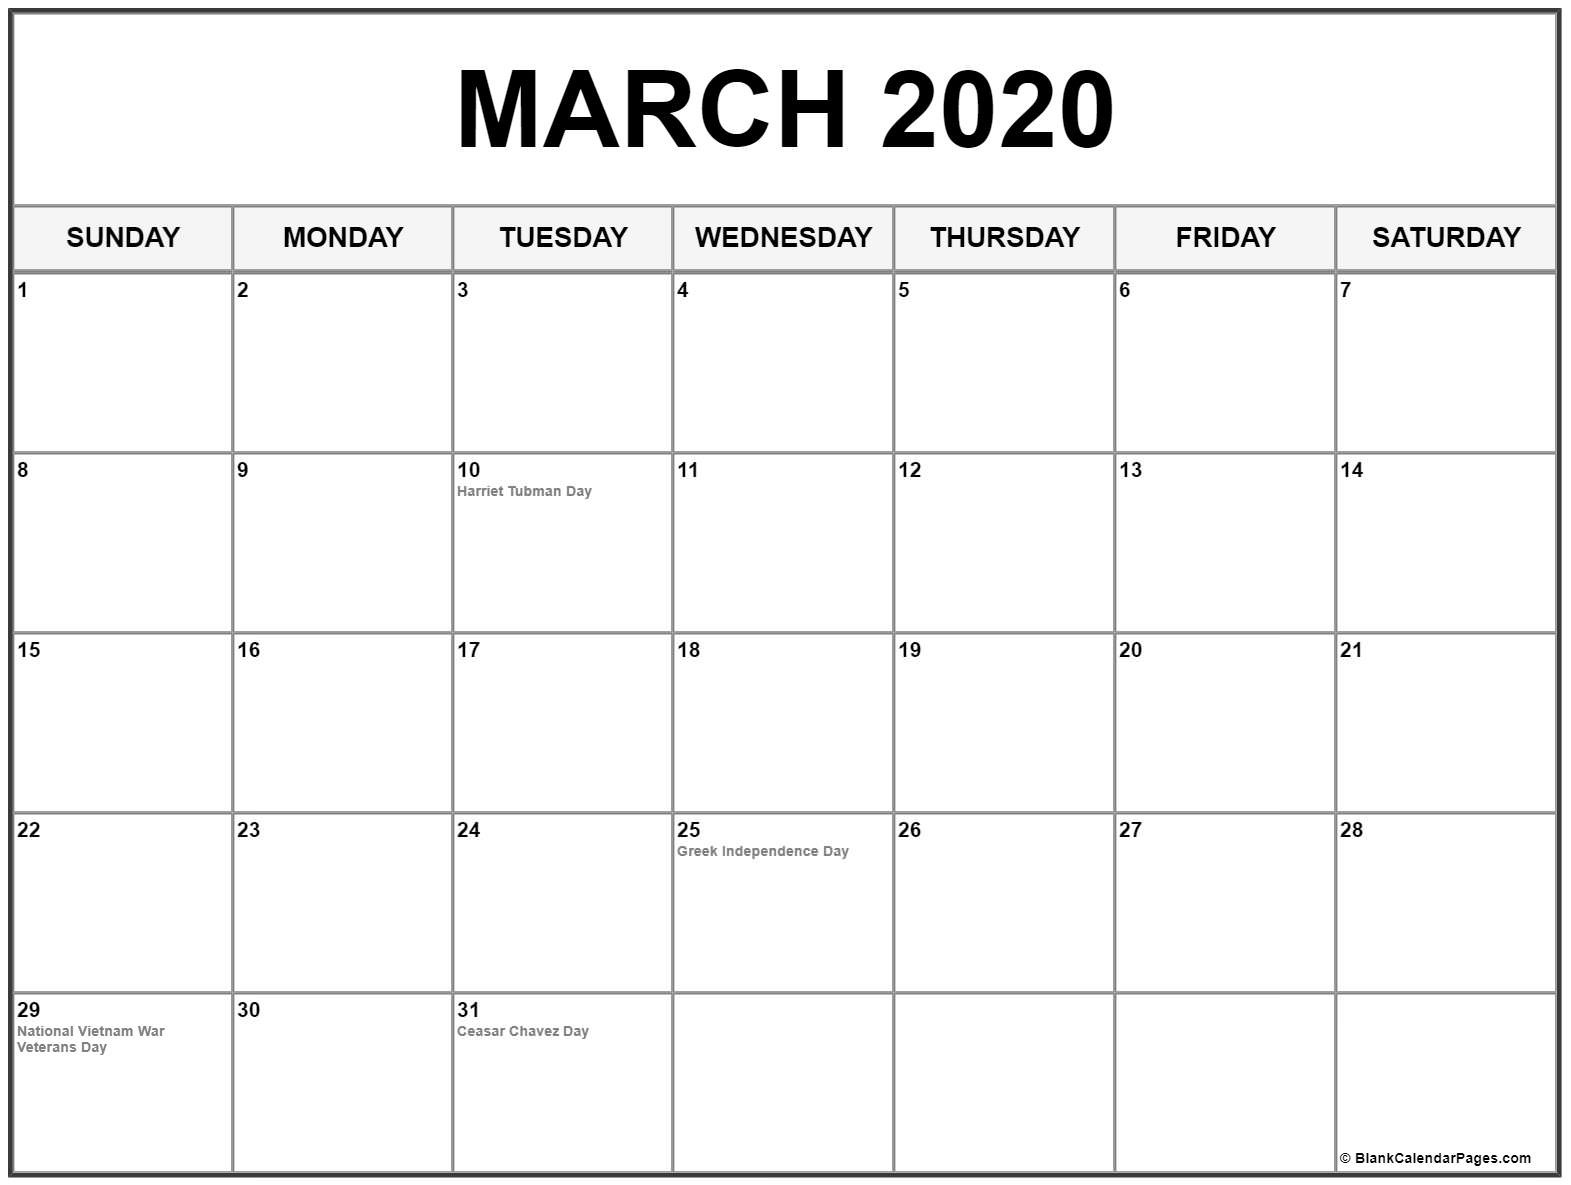 Full List Of March Holidays 2020 Calendar With Festival-Holidays To The Philipines In March 2020